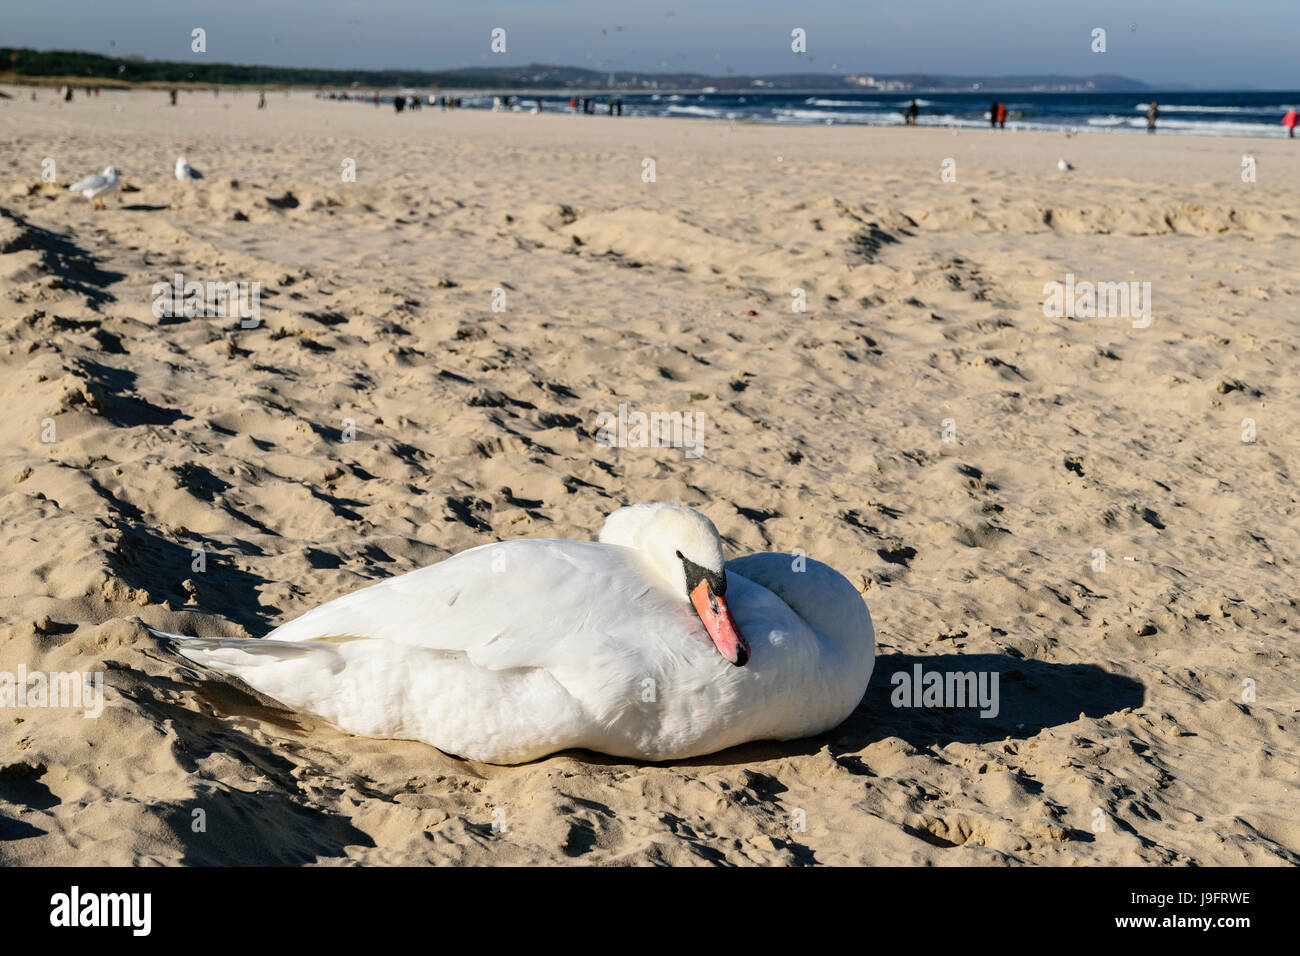 Swan on the beach, Baltic Sea, Swinoujscie, Poland Stock Photo